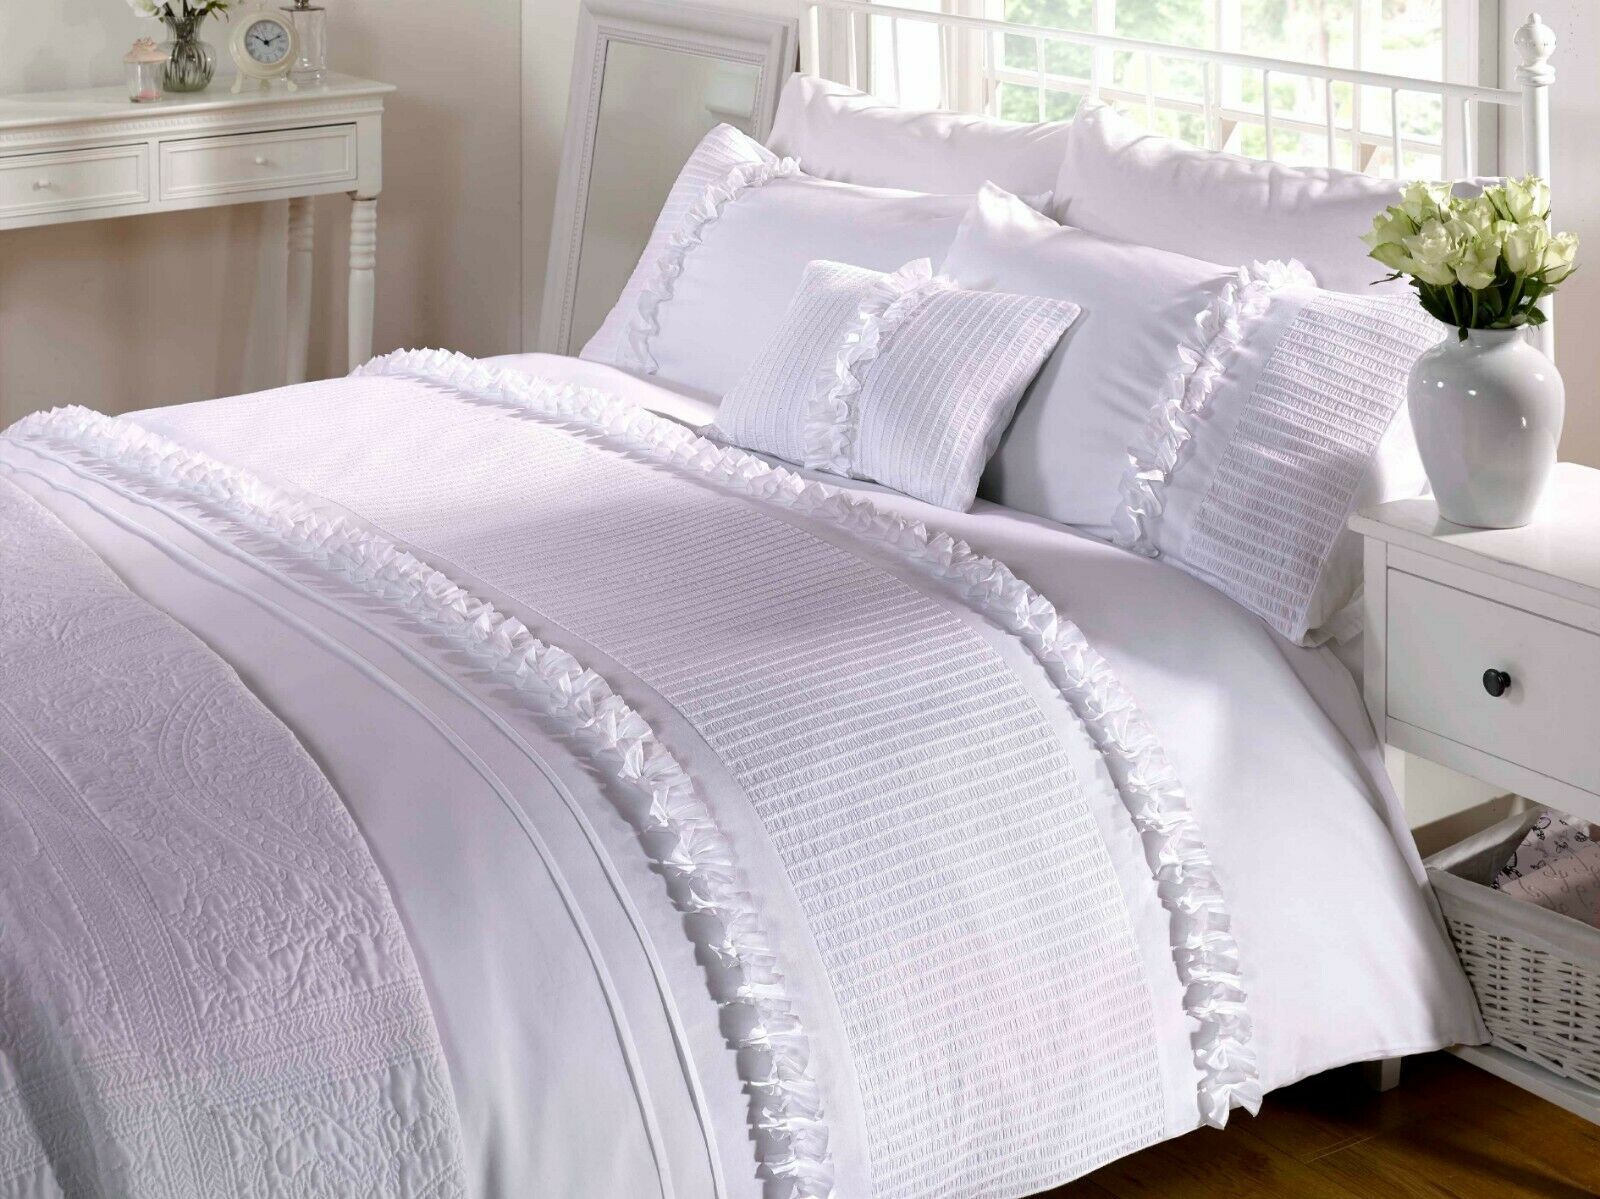 Rapport luxury serenity ruffles embroidered duvet cover bedding set white